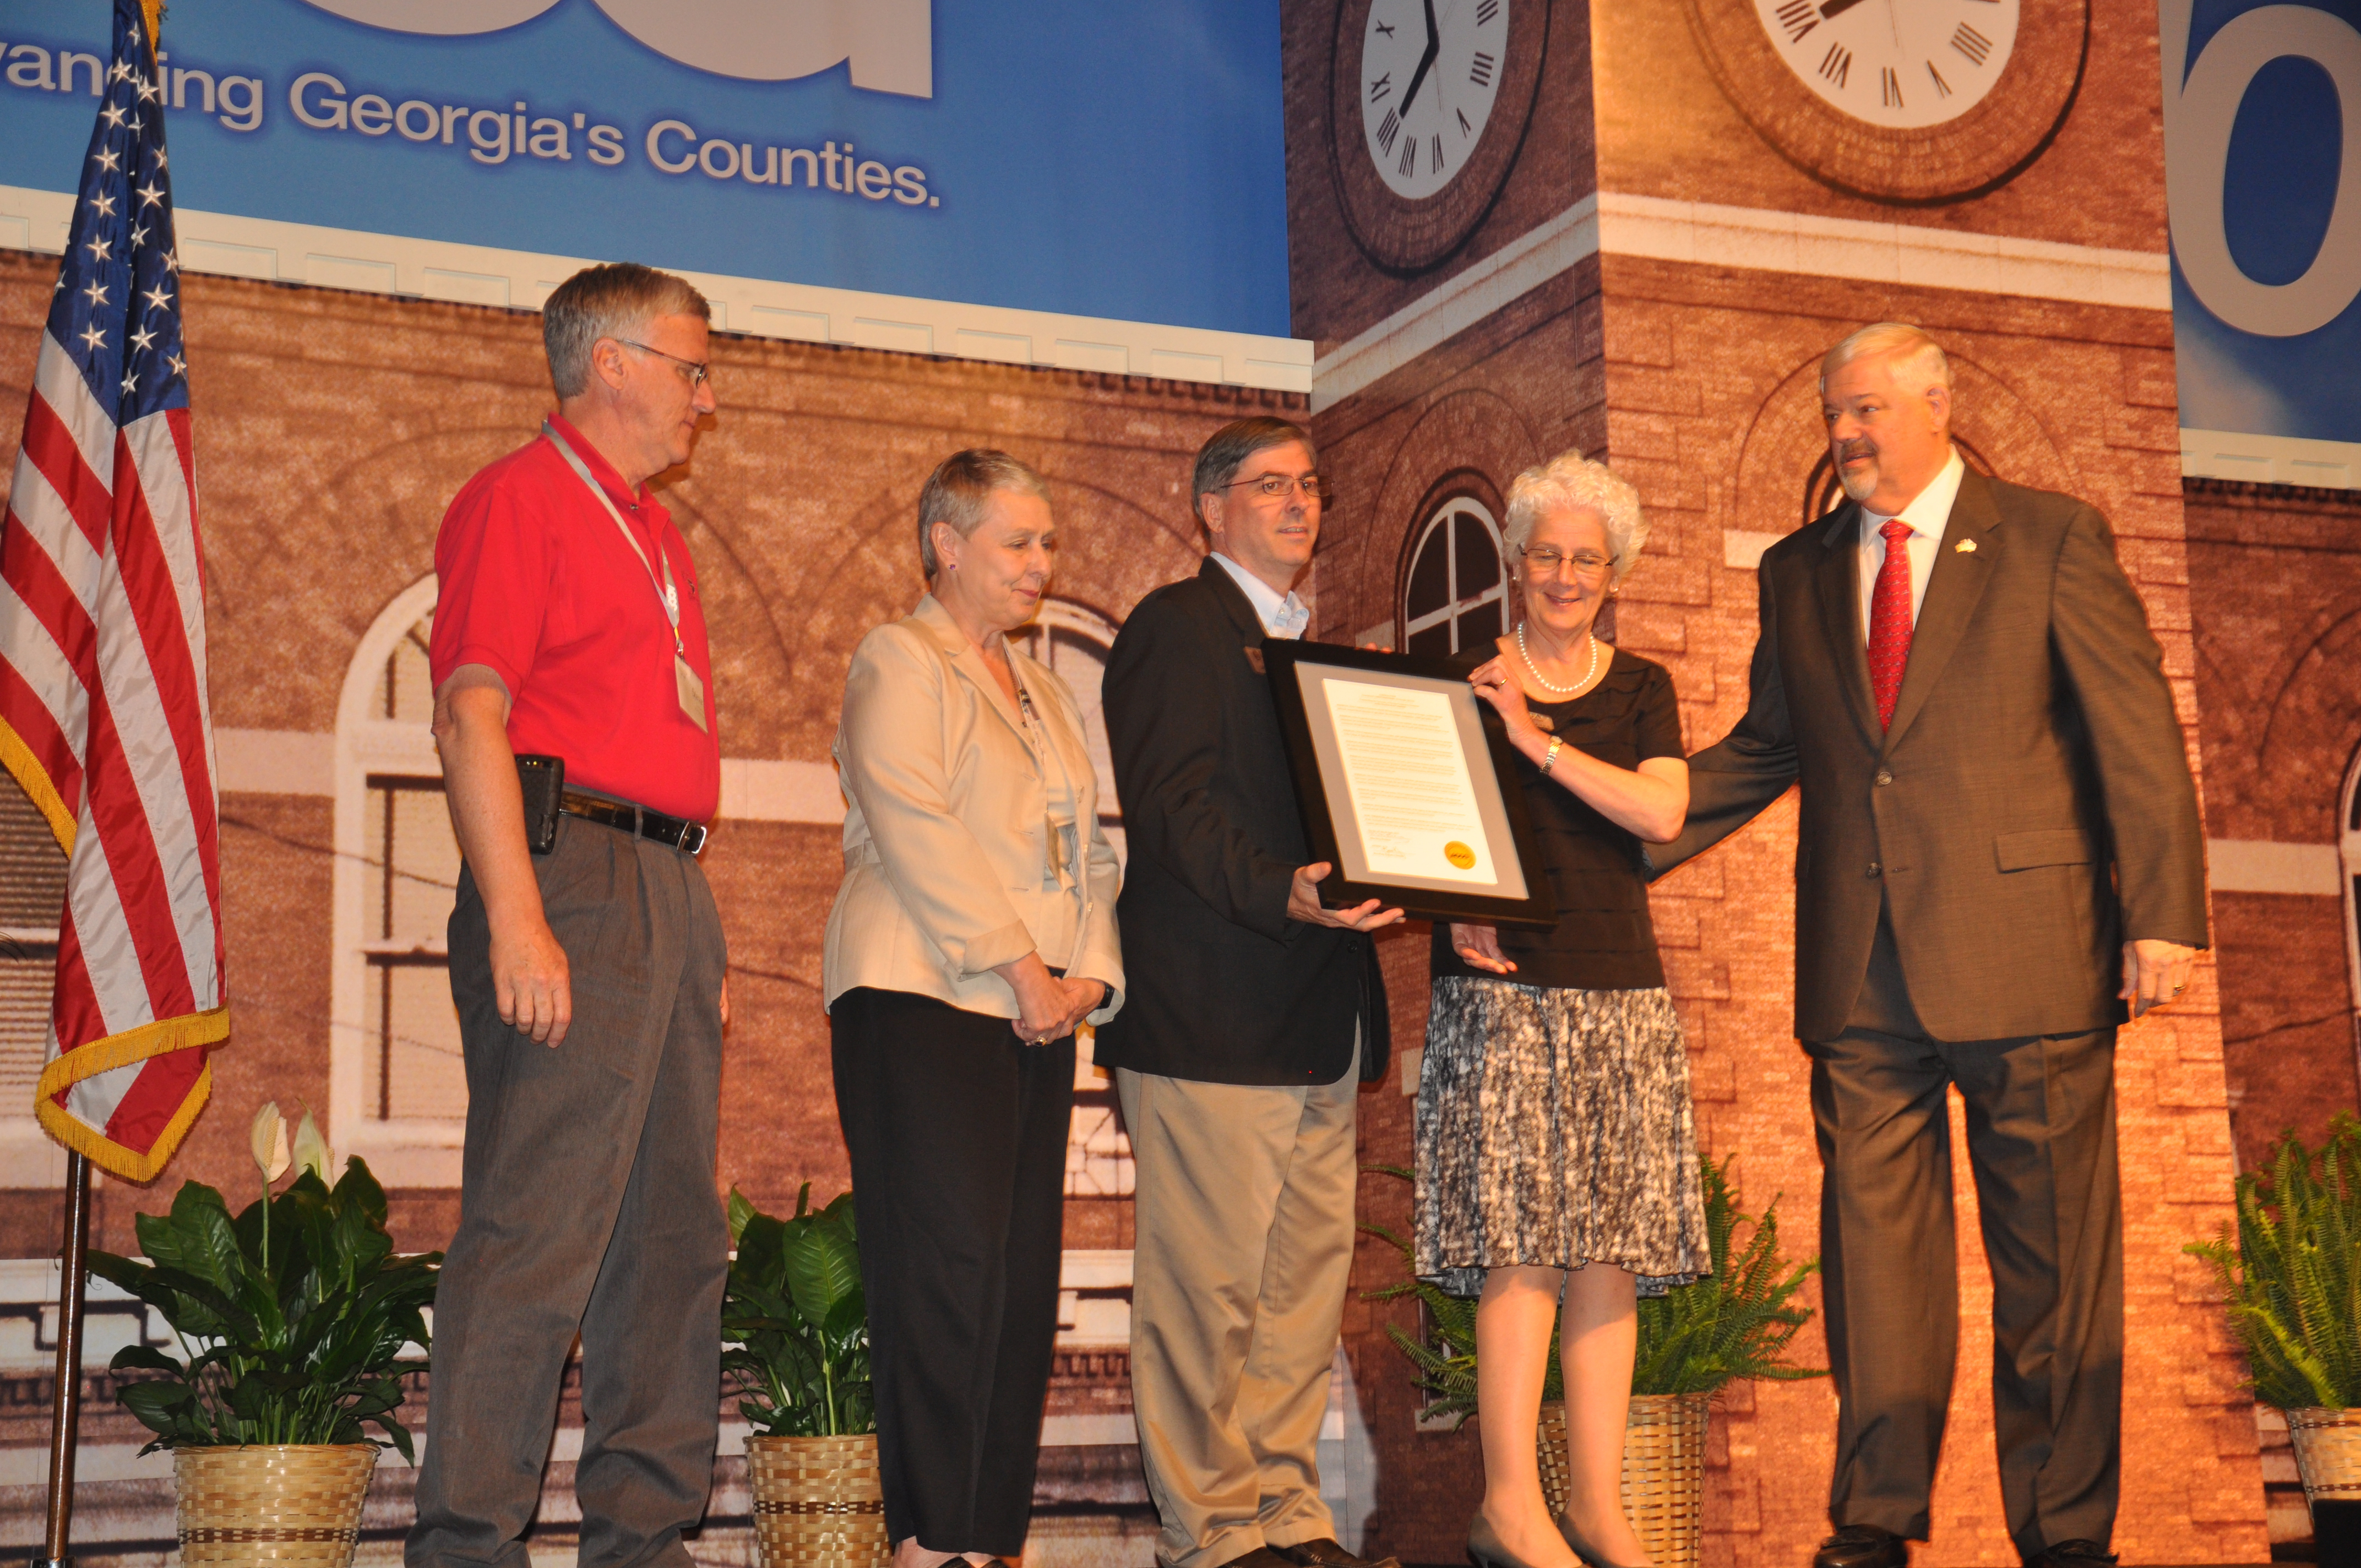 Associate Dean for Extension for the UGA College of Agricultural and Environmental Sciences Beverly Sparks accepts a proclamation recognizing the Georgia Association of Agricultural Agents from Mike Berg, outgoing president of the Association County Commissioners of Georgia.